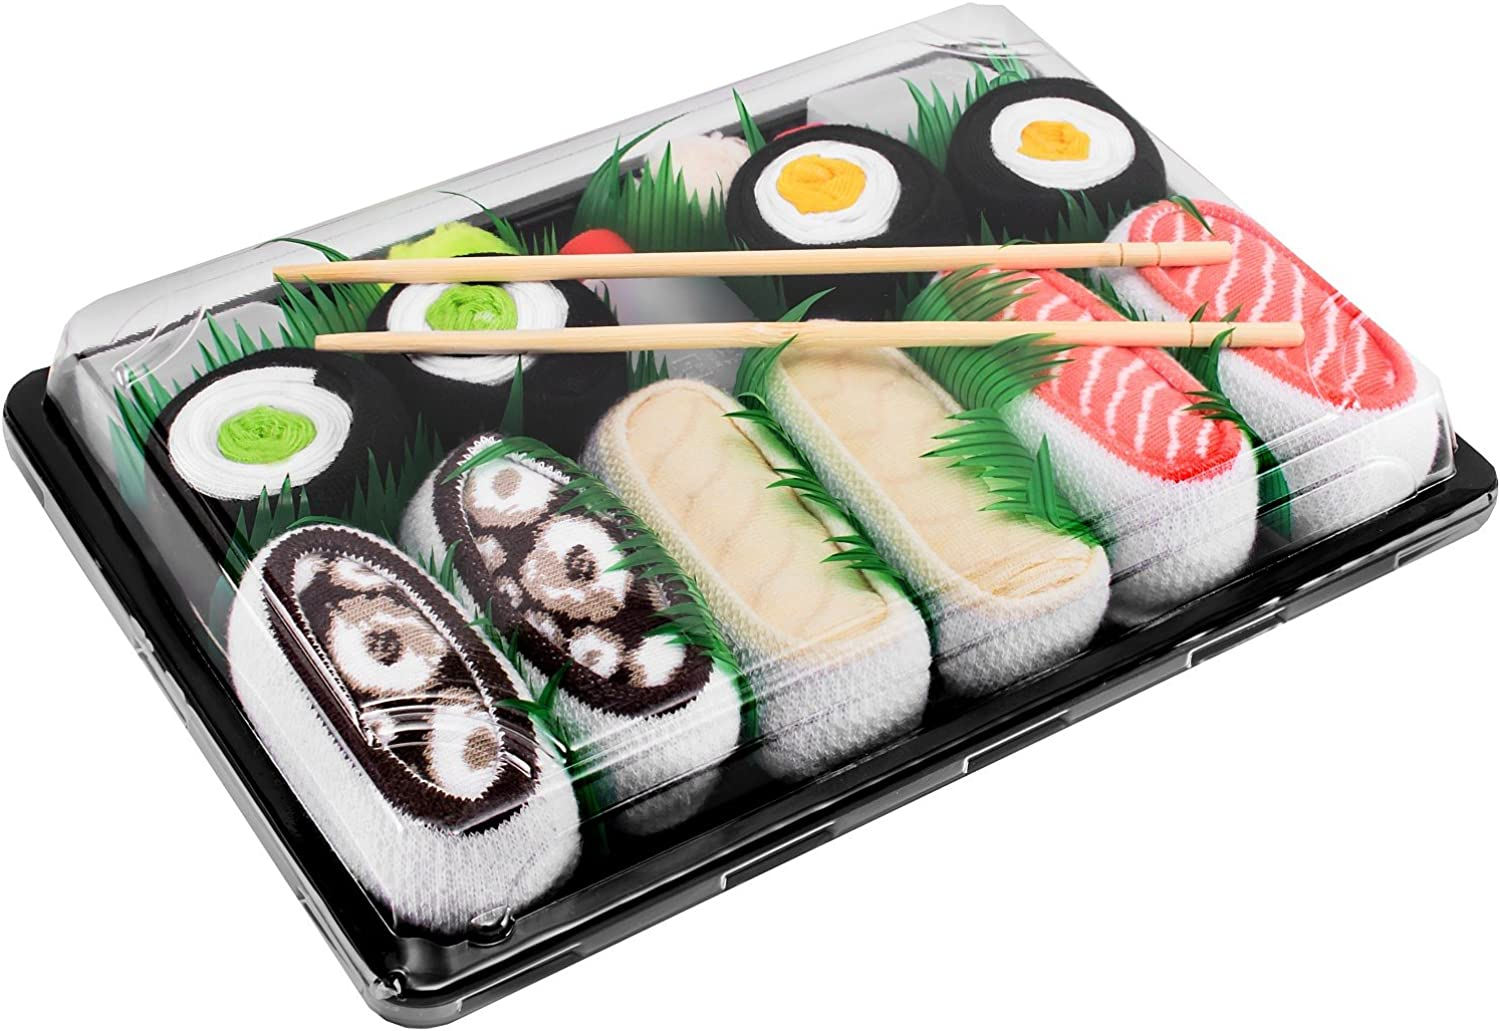 SUSHI SOCKS BOX 5 pairs Salmon Butterfish Octopus Maki FUNNY GIFT Made in Europe